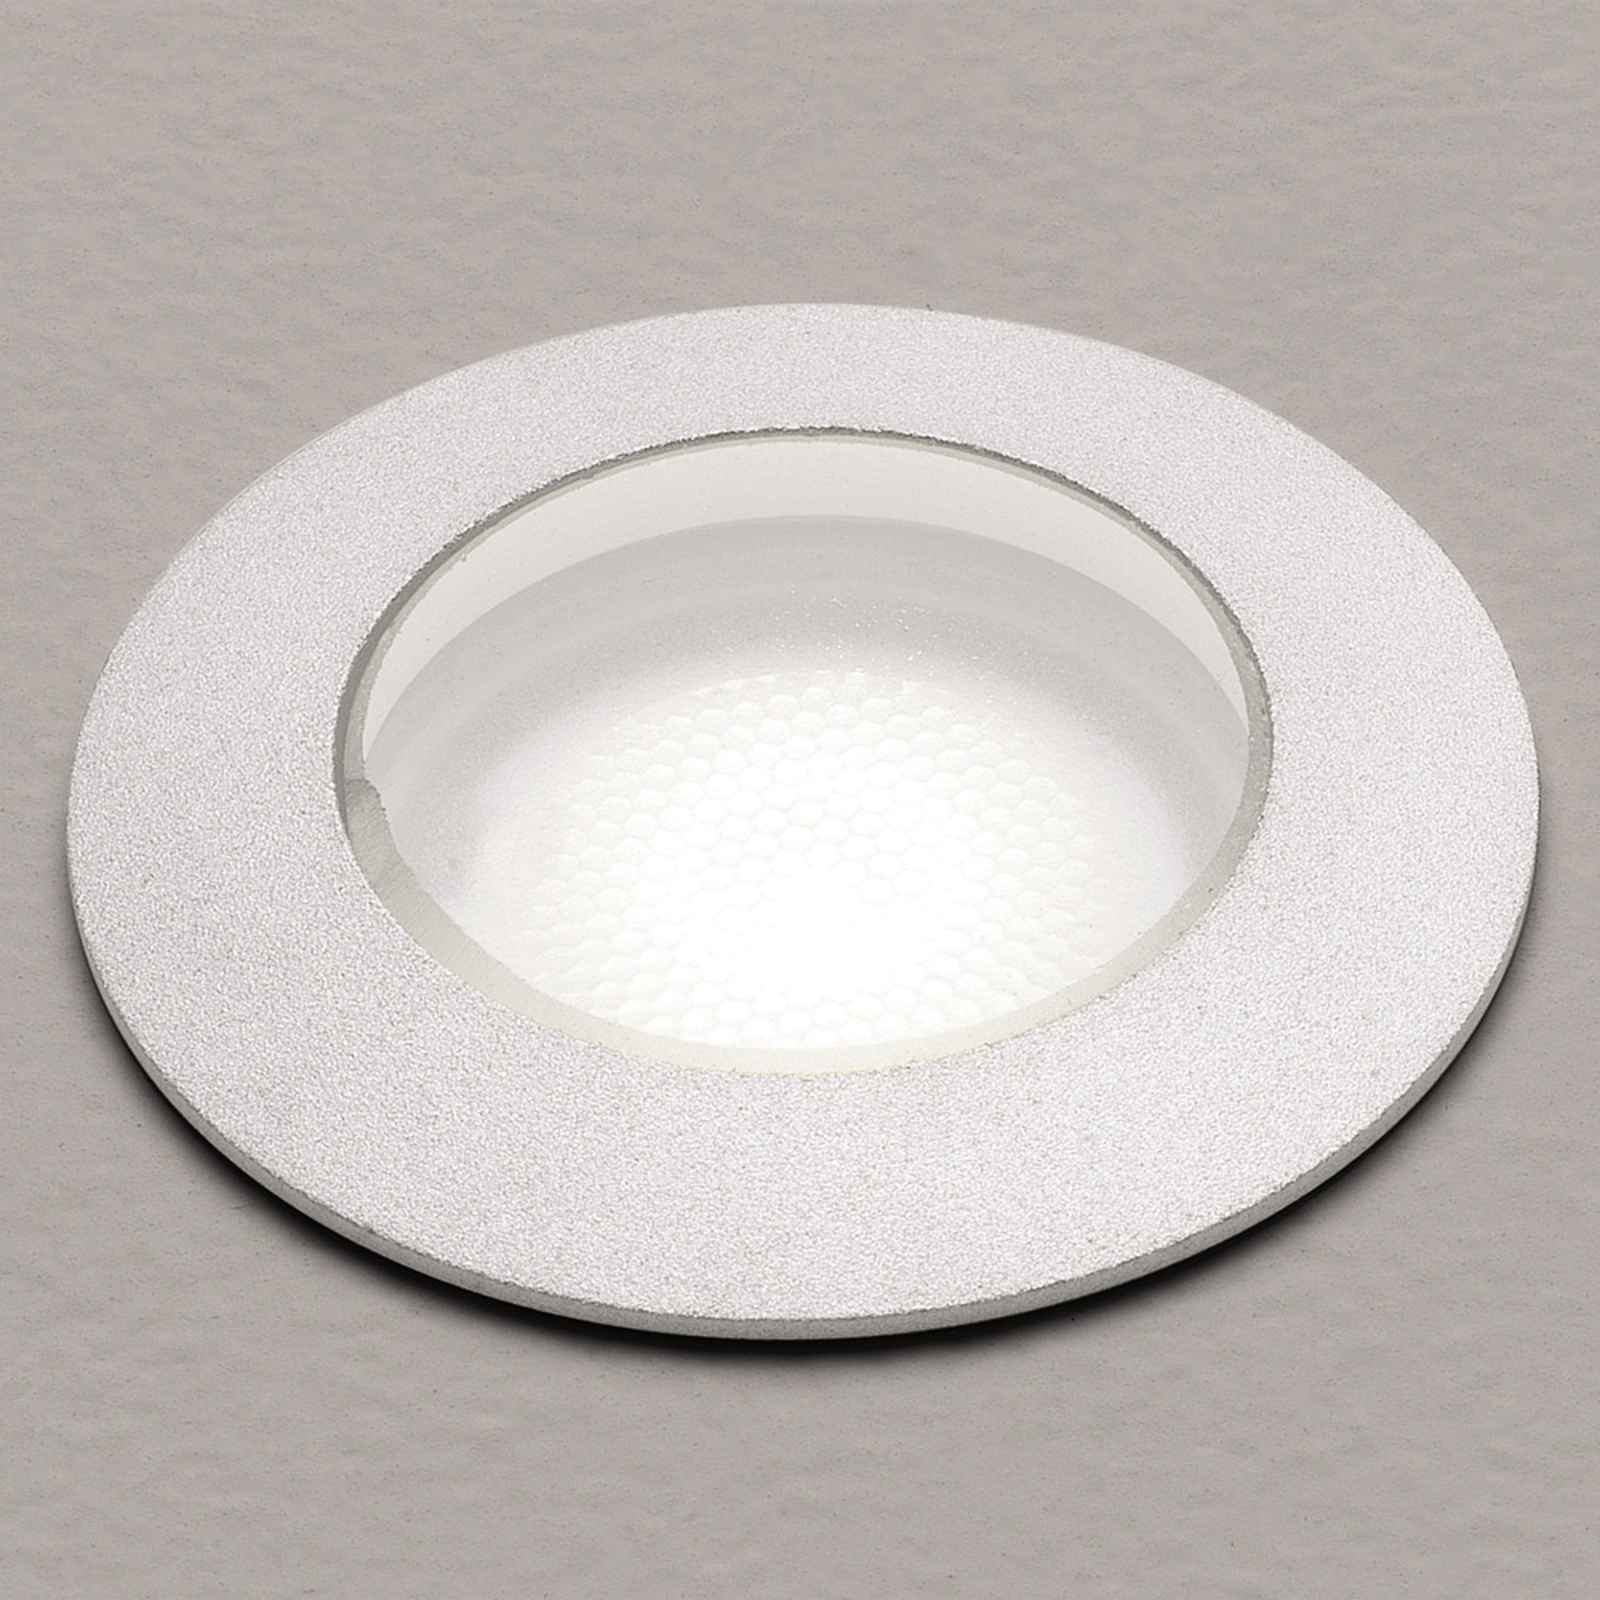 Terra 42 LED Built-In Bathroom Spotlight with IP67_1020459_1